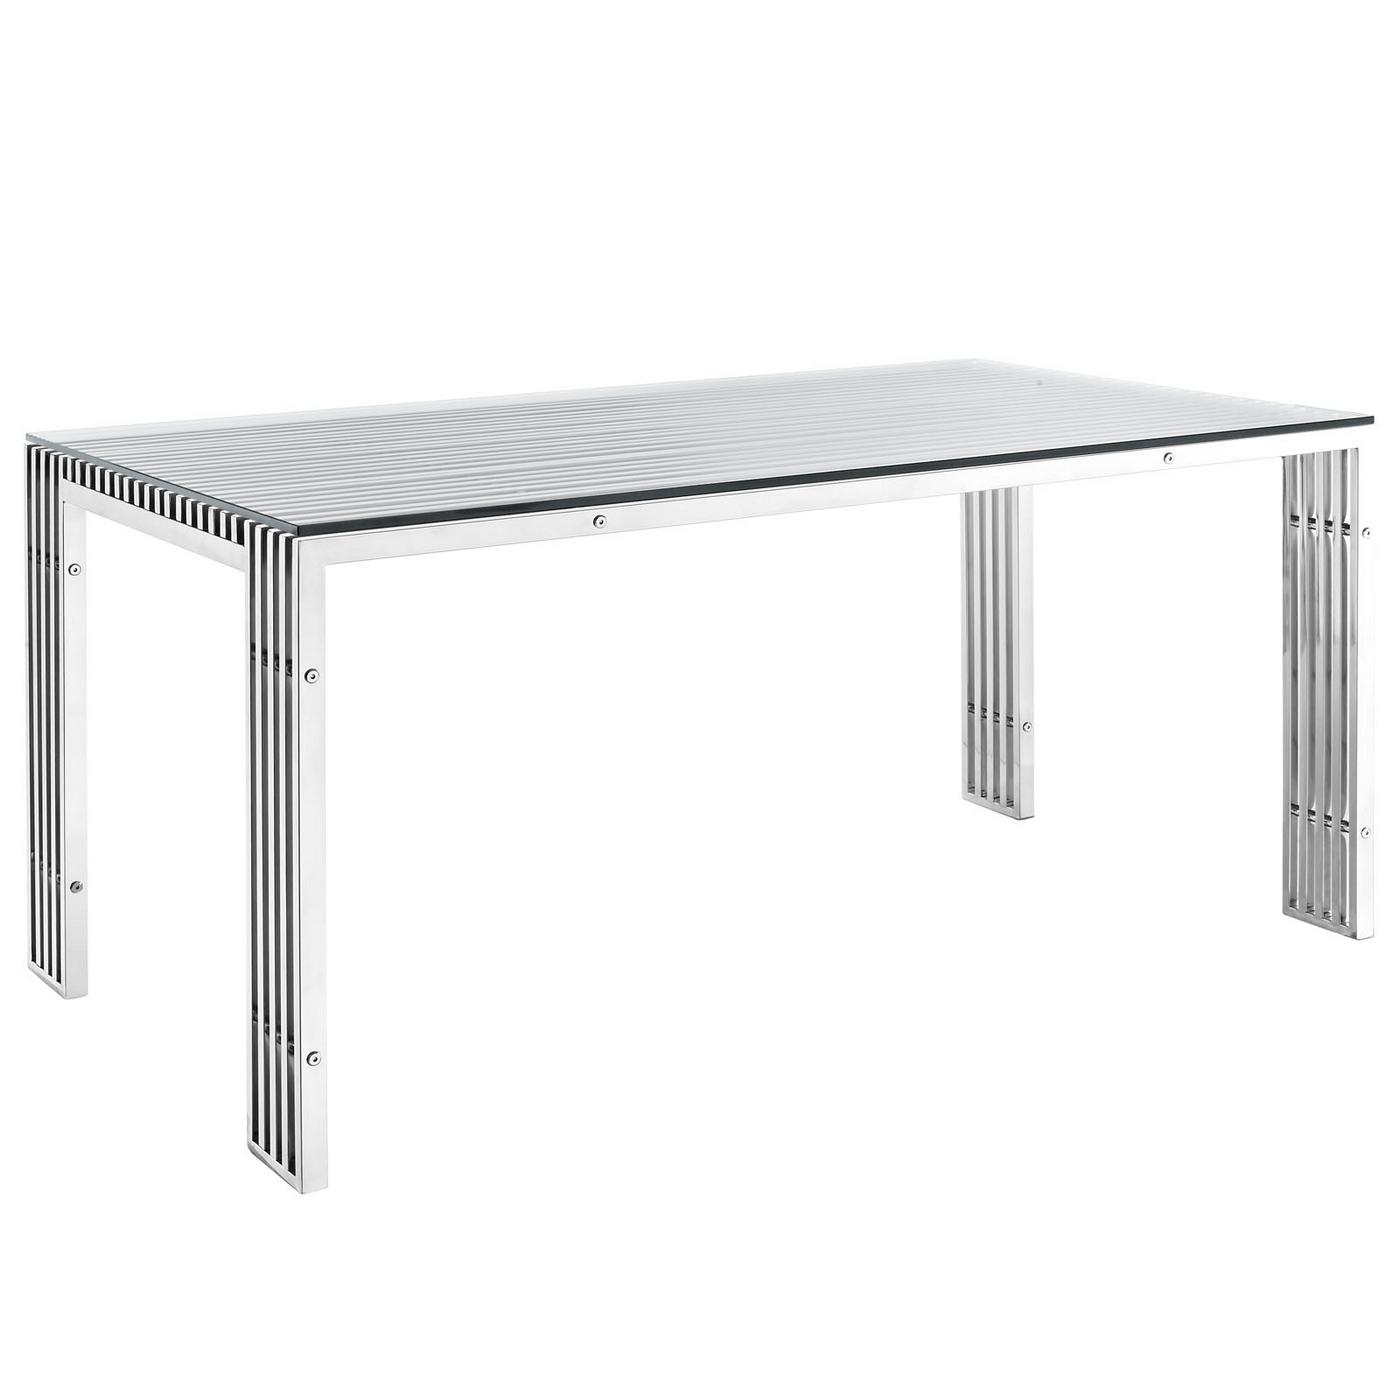 Gridiron Modernistic Stainless Steel Dining Table With